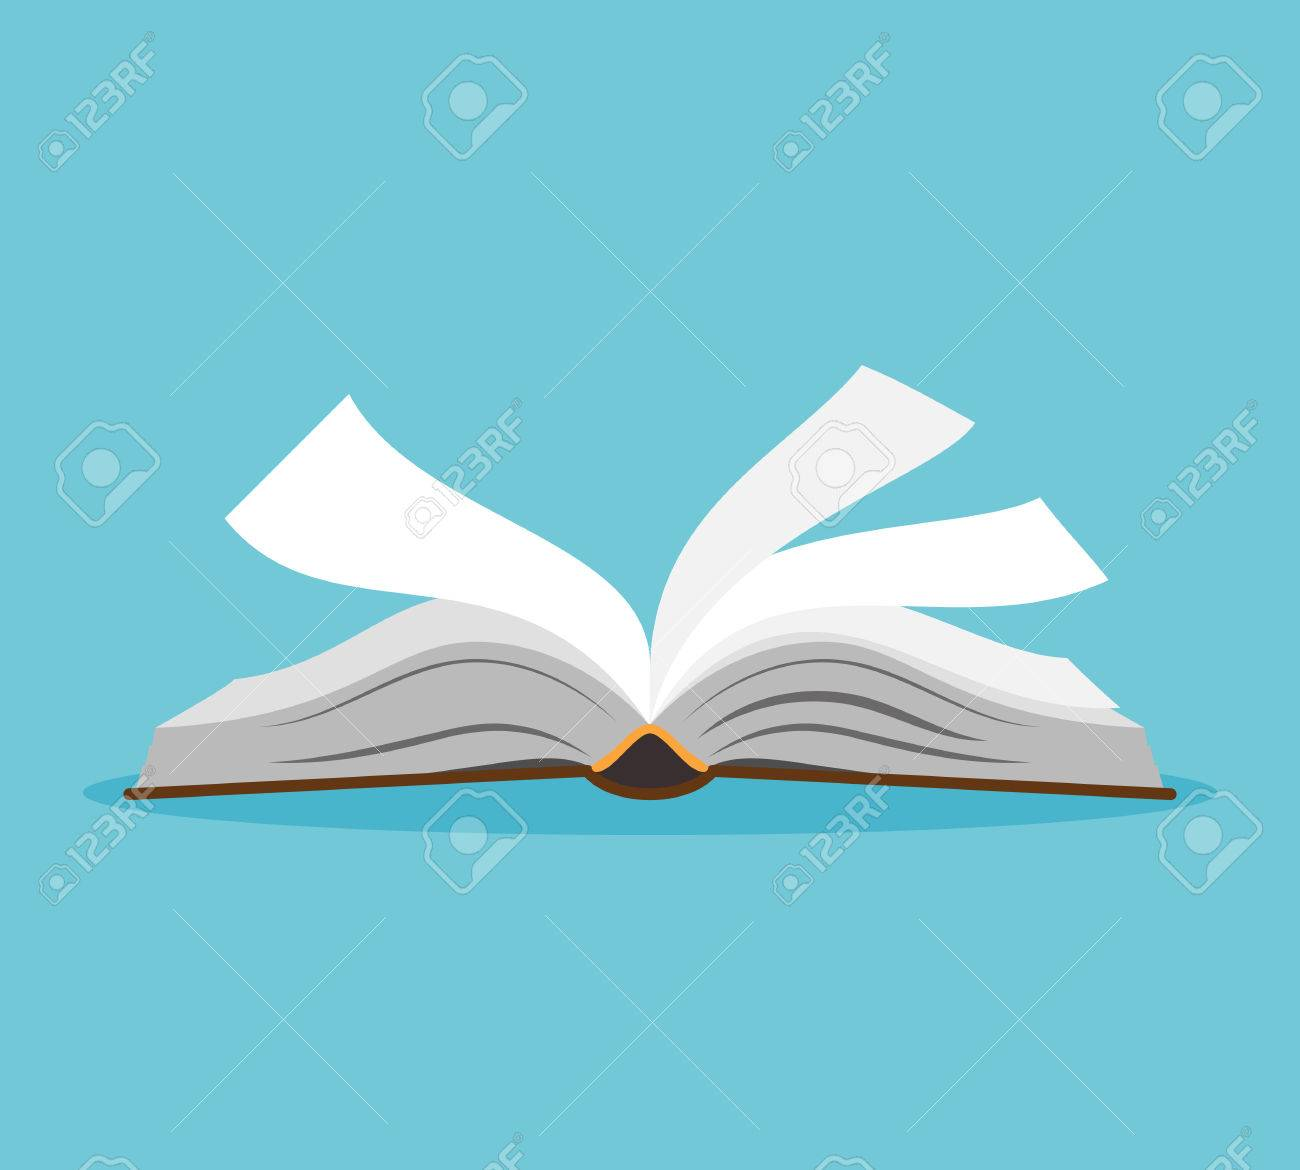 Open Book Vector - Opened Book Illustration. Open Book With Pages Fluttering. Vector ...